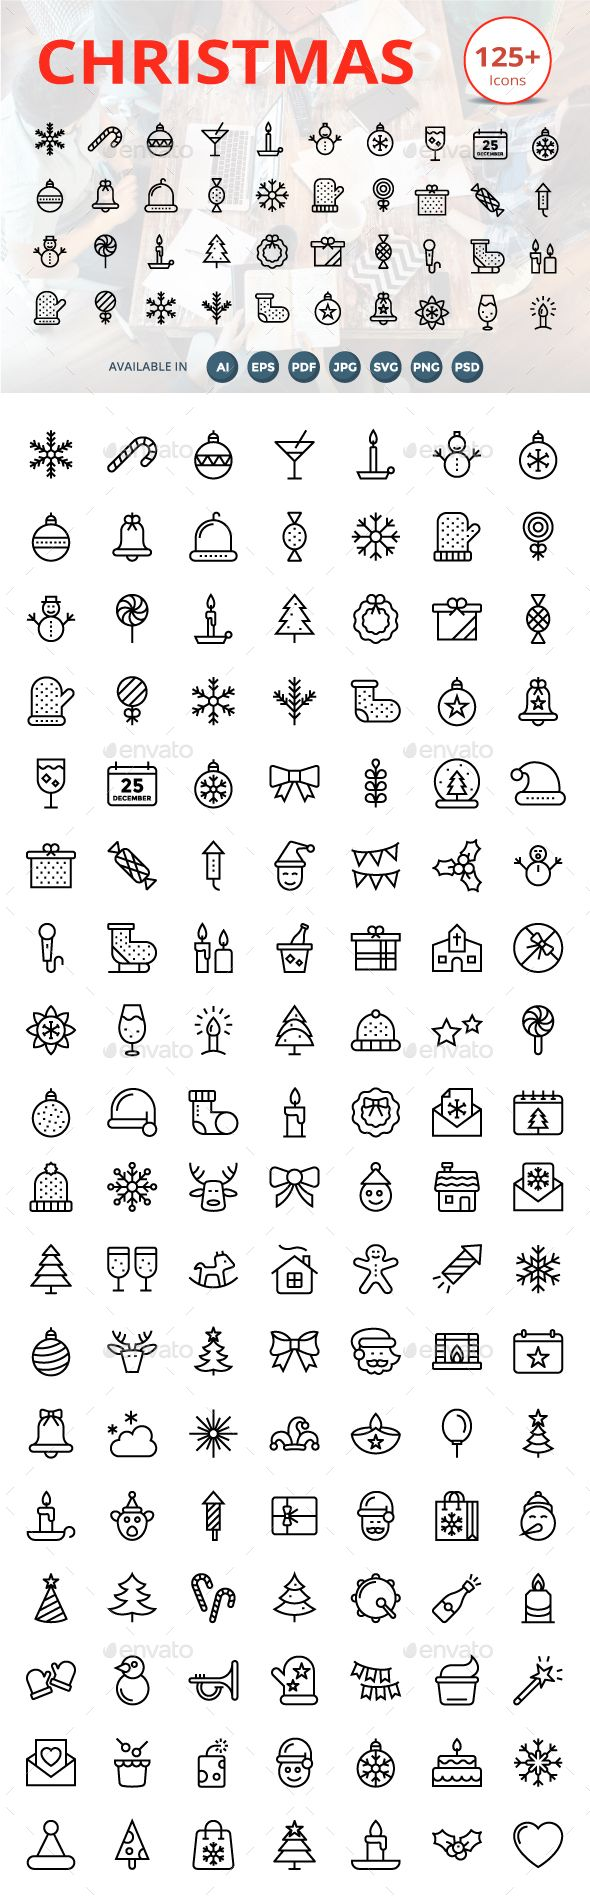 125 plus Christmas Line Icons — Photoshop PSD #santa #wine • Download ➝ https://graphicriver.net/item/125-plus-christmas-line-icons/19171453?ref=pxcr